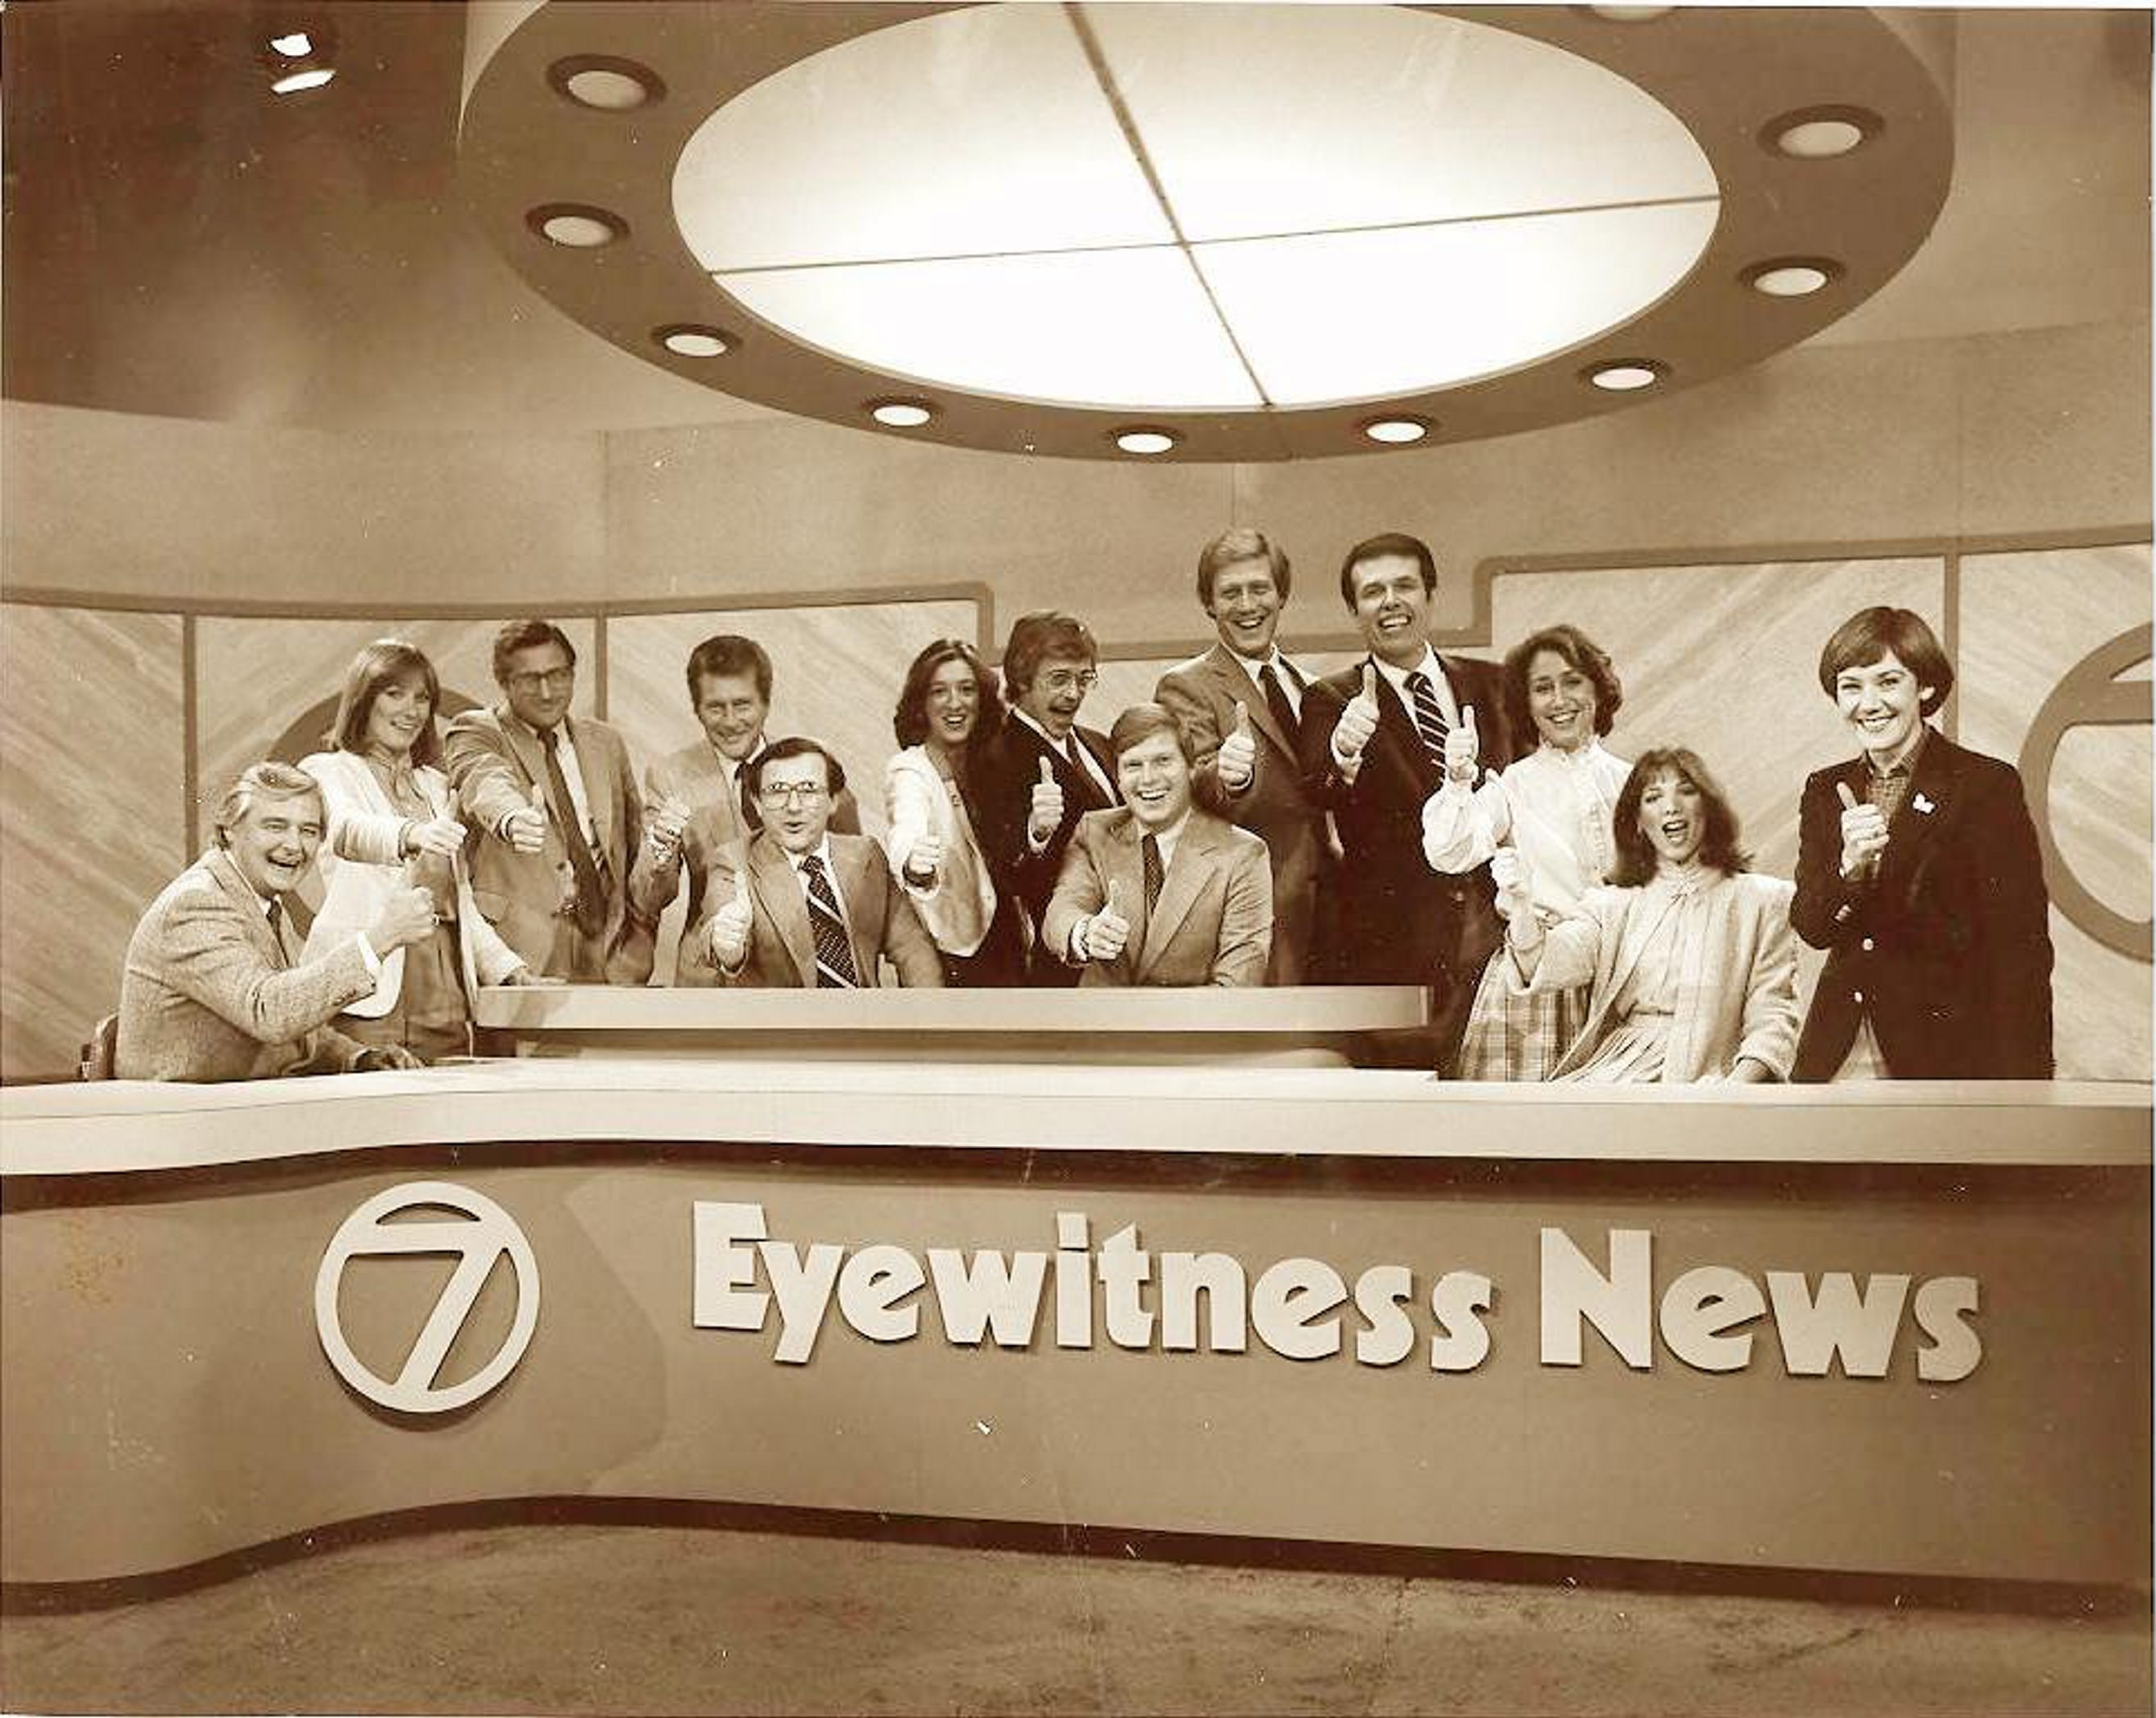 In 1983, Eyewitness News and Channel 7 were at their peak, led by the iconic news team of Irv Weinstein, Rick Azar and Tom Jolls.